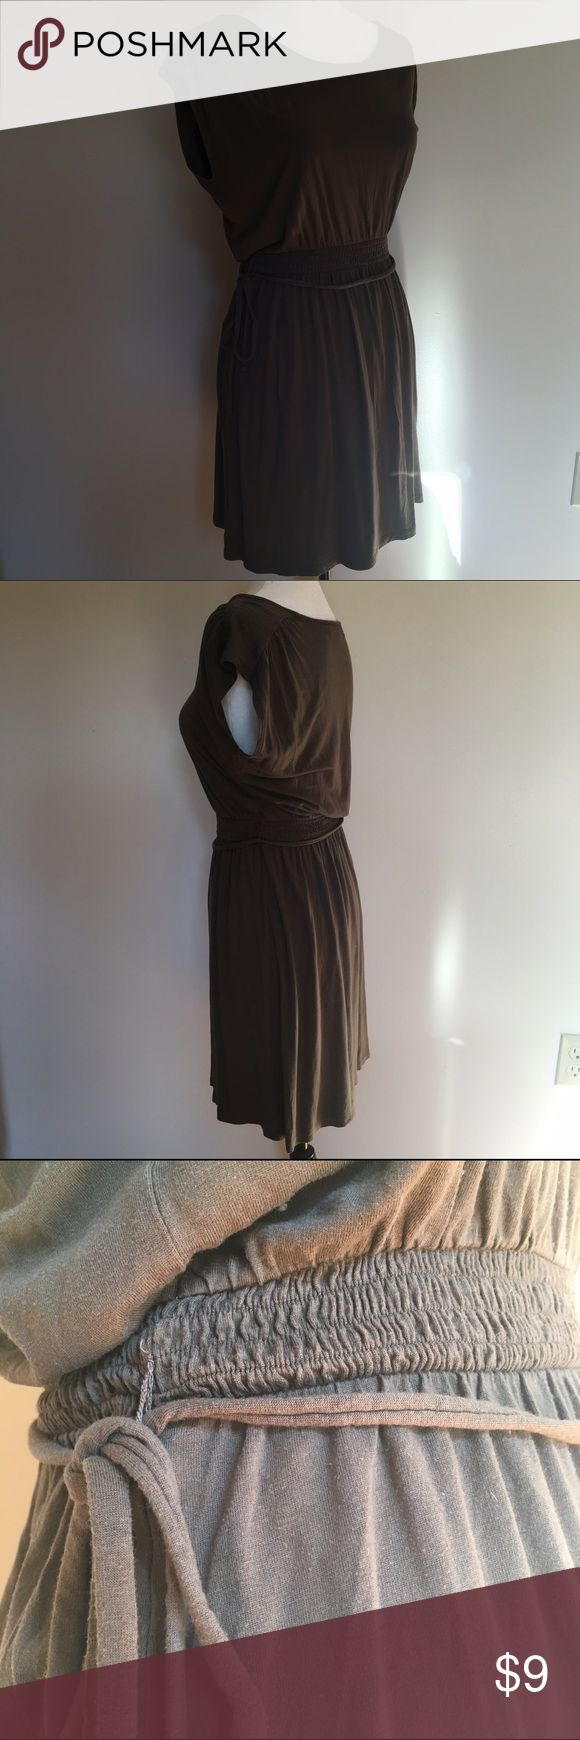 LOFT Minimalist Olive Green Dress Minimalist and chic. This dress from Anne Taylor LOFT is versatile for many occasions. 70%Rayon, 30% Tencel Lyocell. Great condition.                                                                                                                                                                                📦Save on shipping when you bundle!                                      🎉 30% off bundles of 2 or more…